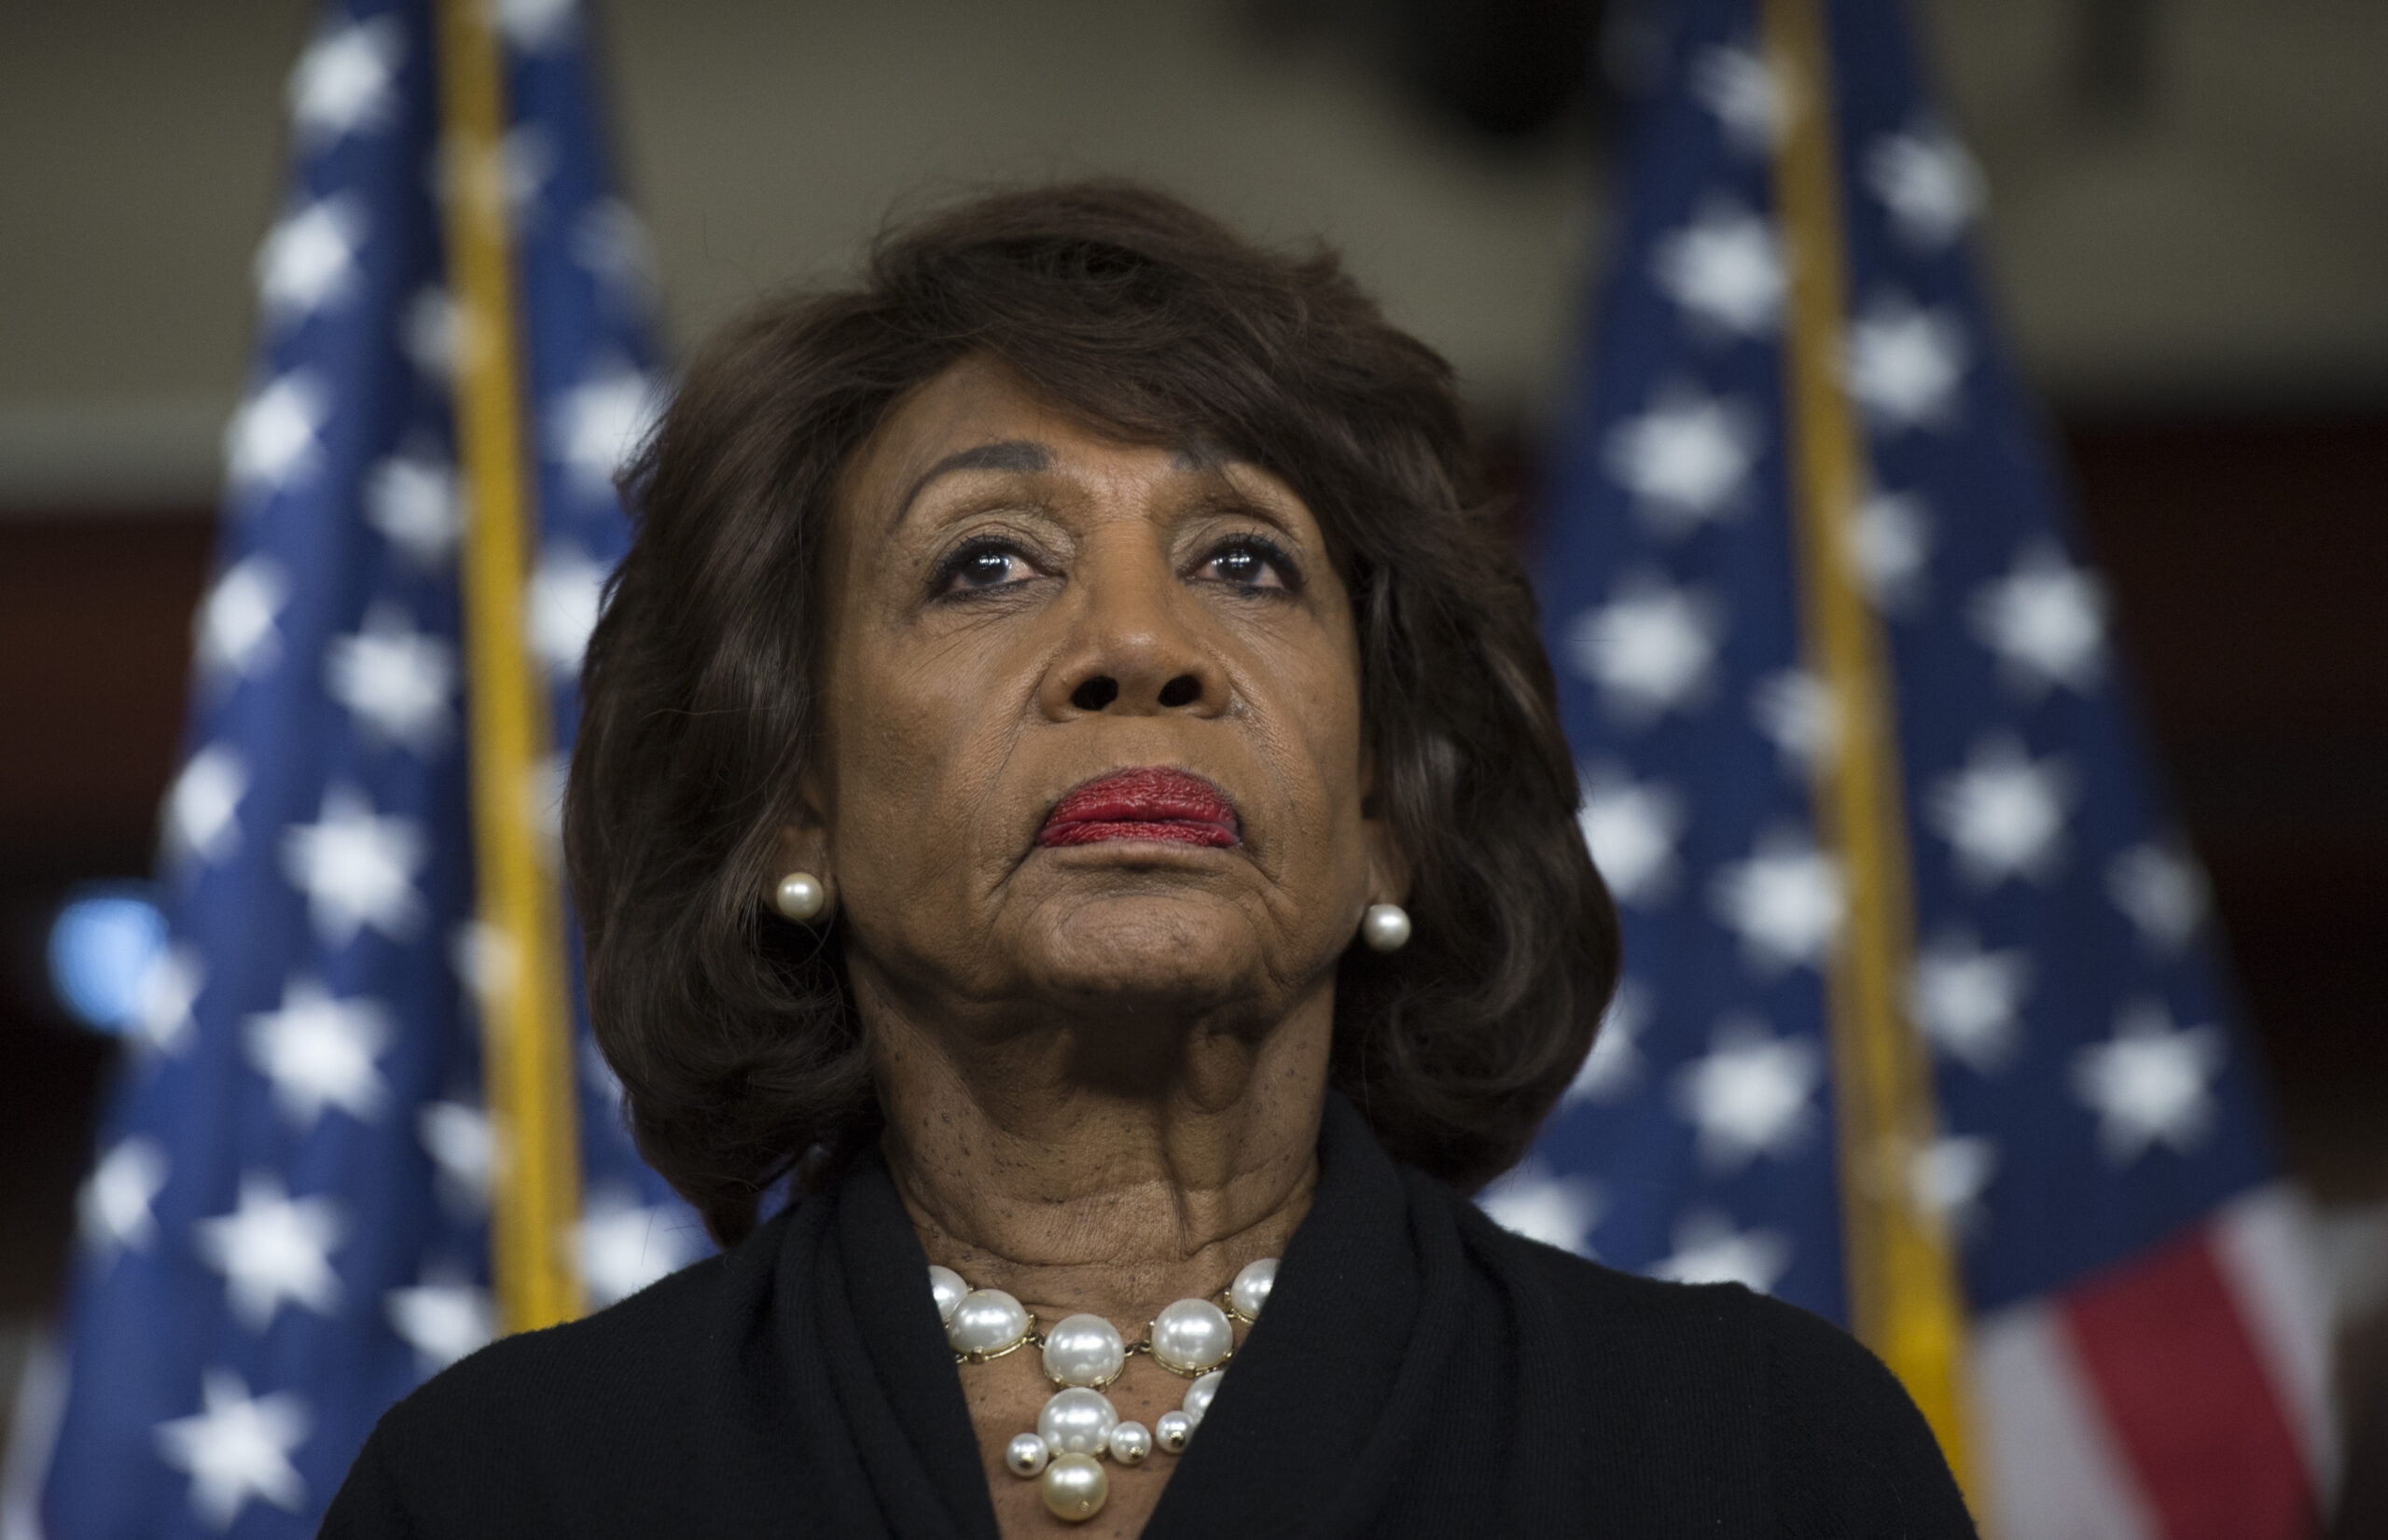 Maxine Waters Promises to 'Never, Ever Forgive' Black Trump Voters: 'They Will Go Down In History'